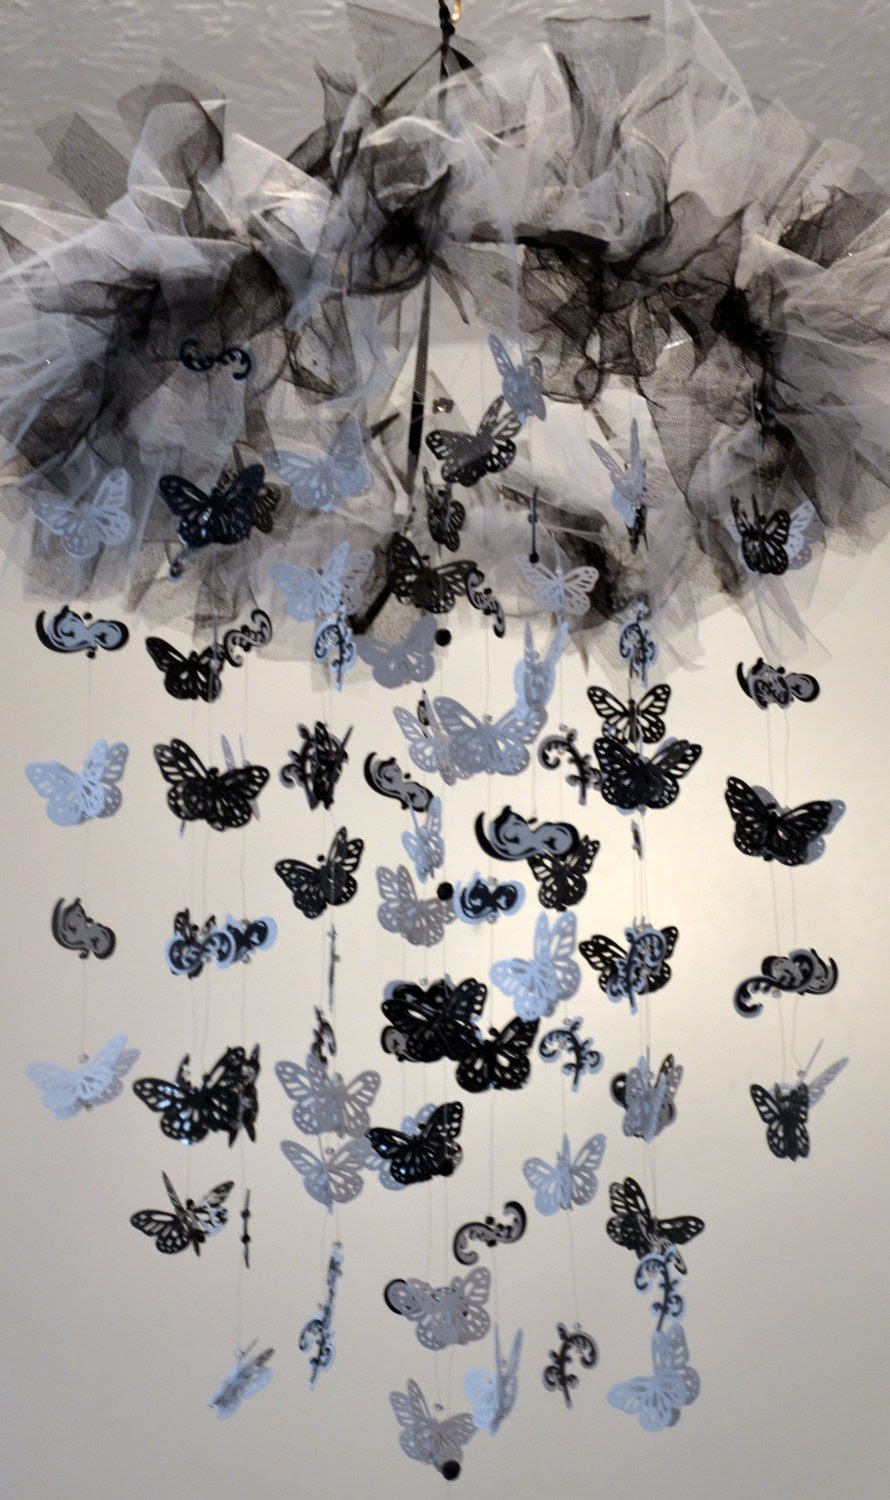 Classic Silhouettes Mobile (Black/White Butterfly Mobile) Nursery Decor, Baby Shower Gift READY TO SHIP